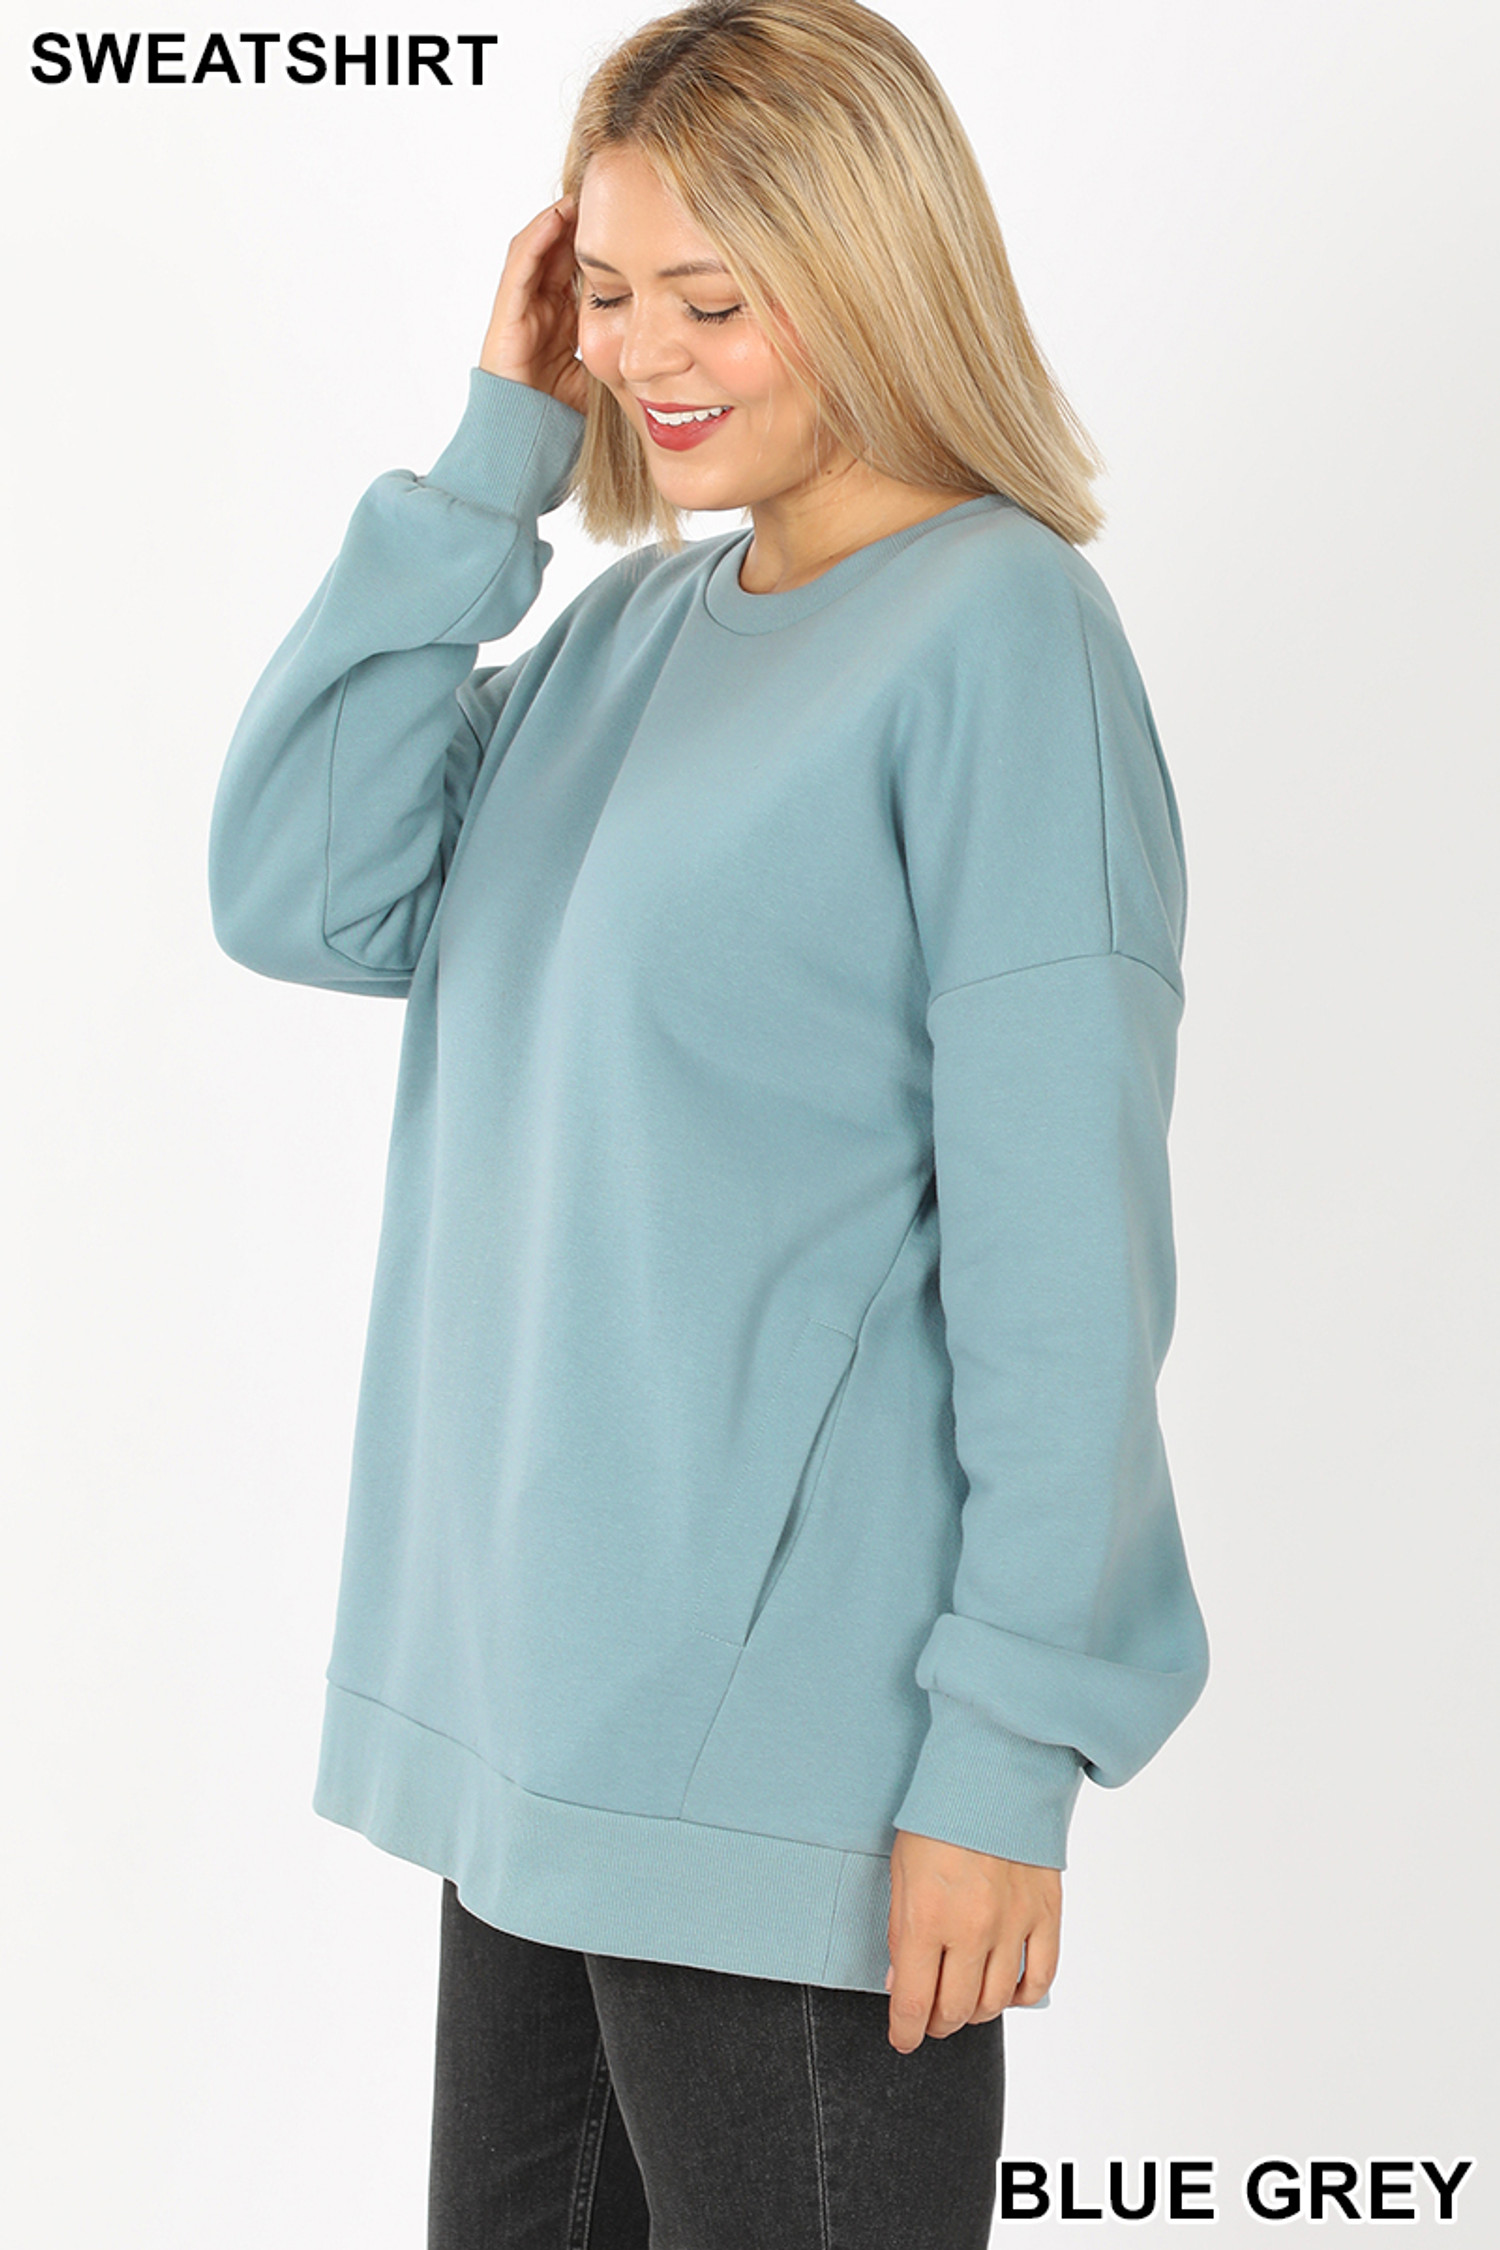 Left side image of Blue Grey Cotton Round Crew Neck Plus Size Sweatshirt with Side Pockets